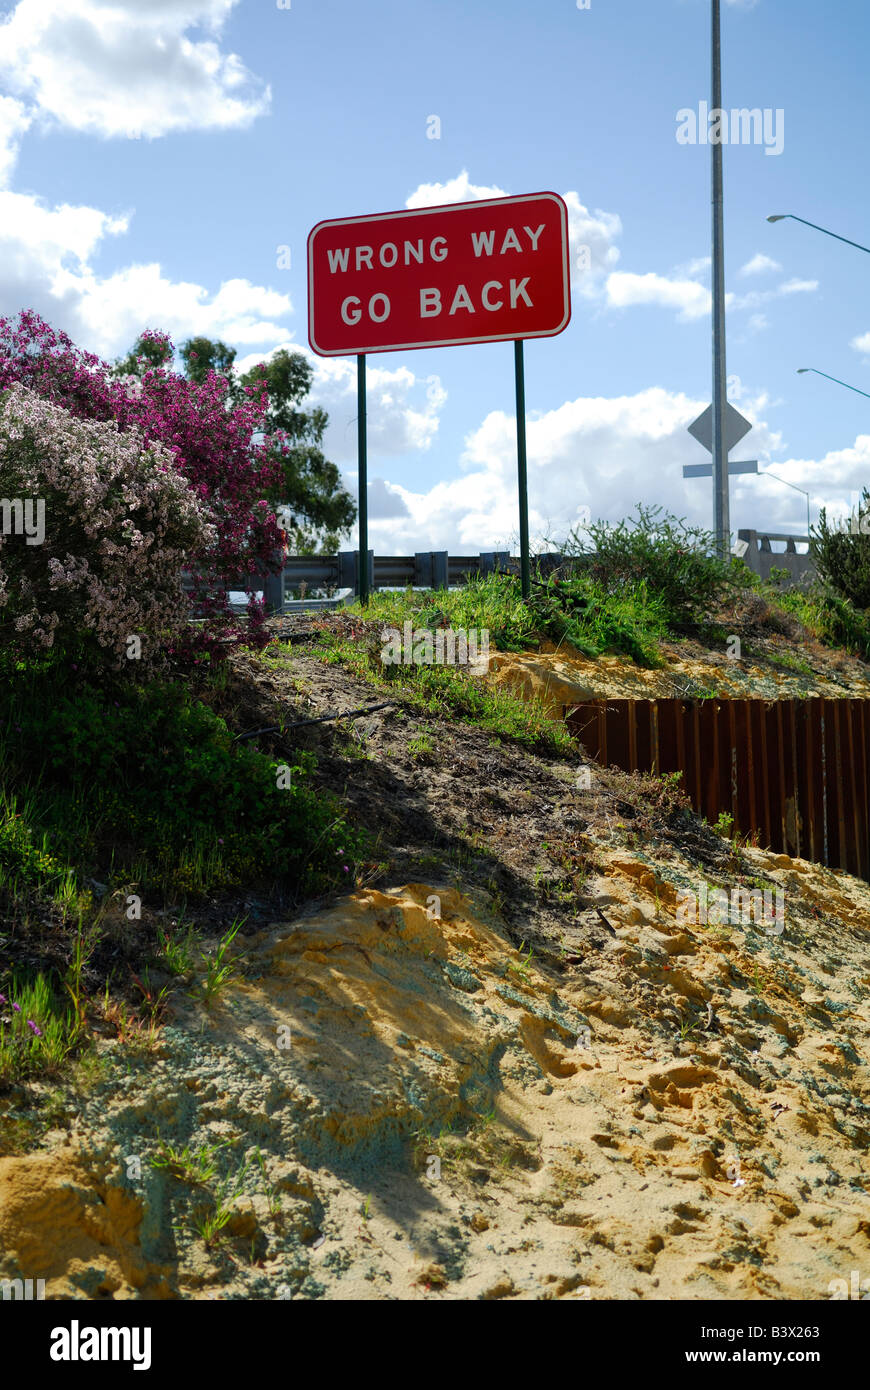 Red and white 'Wrong Way, Go Back' sign - Stock Image